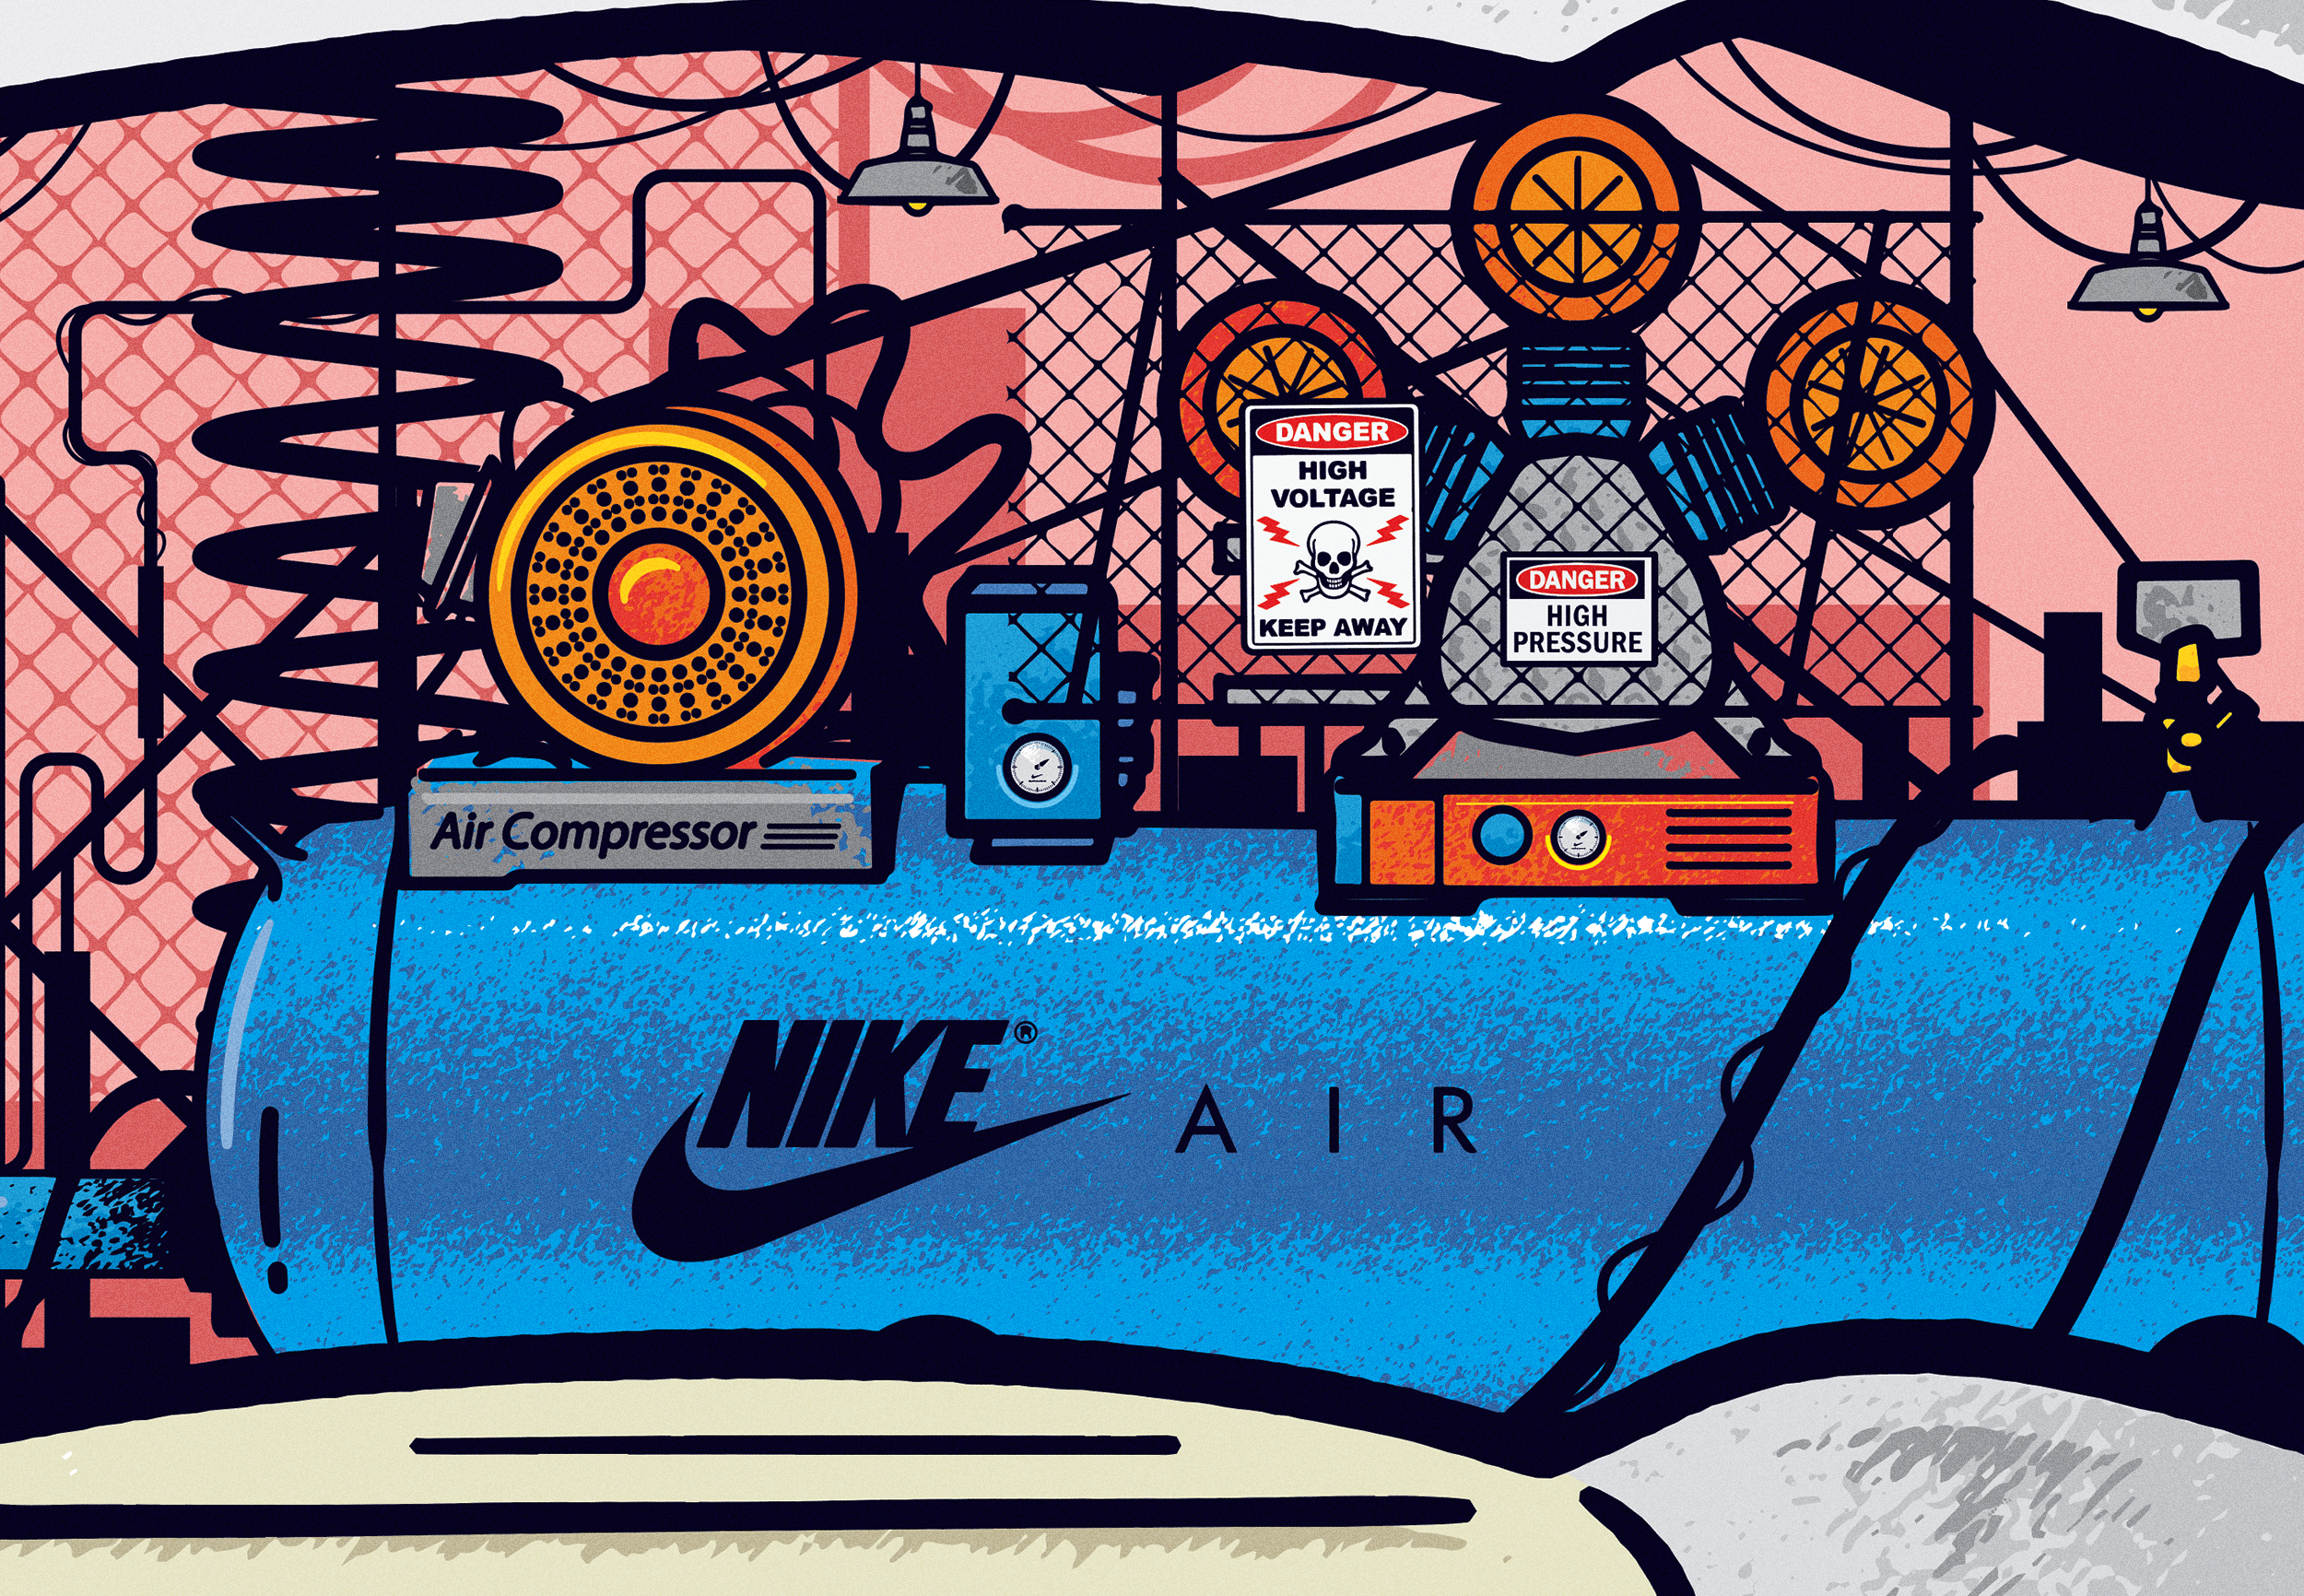 Le sneakers in costruzione illustrate da Musketon | Collater.al 9